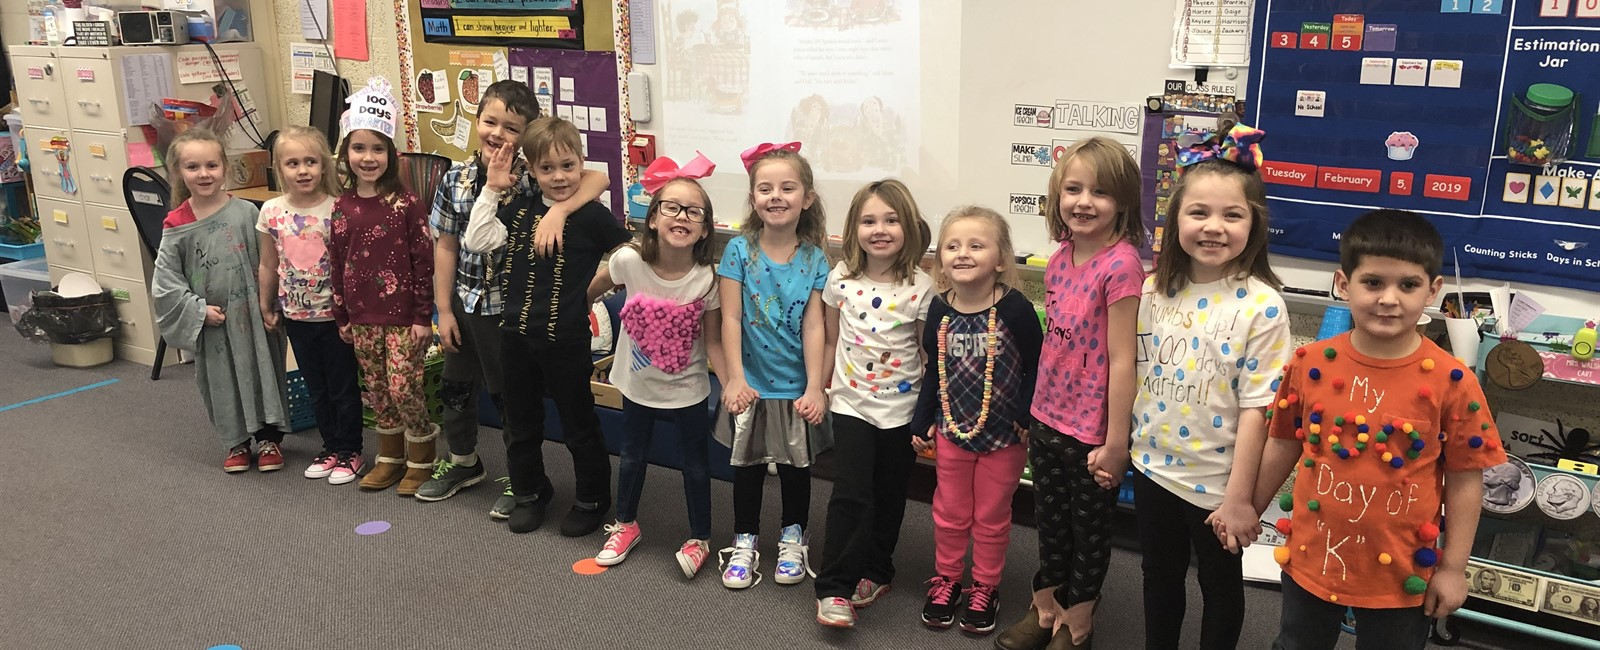 B.L. Miller Elementary kindergarten students celebrated the 100th day of school by creating their own shirts.